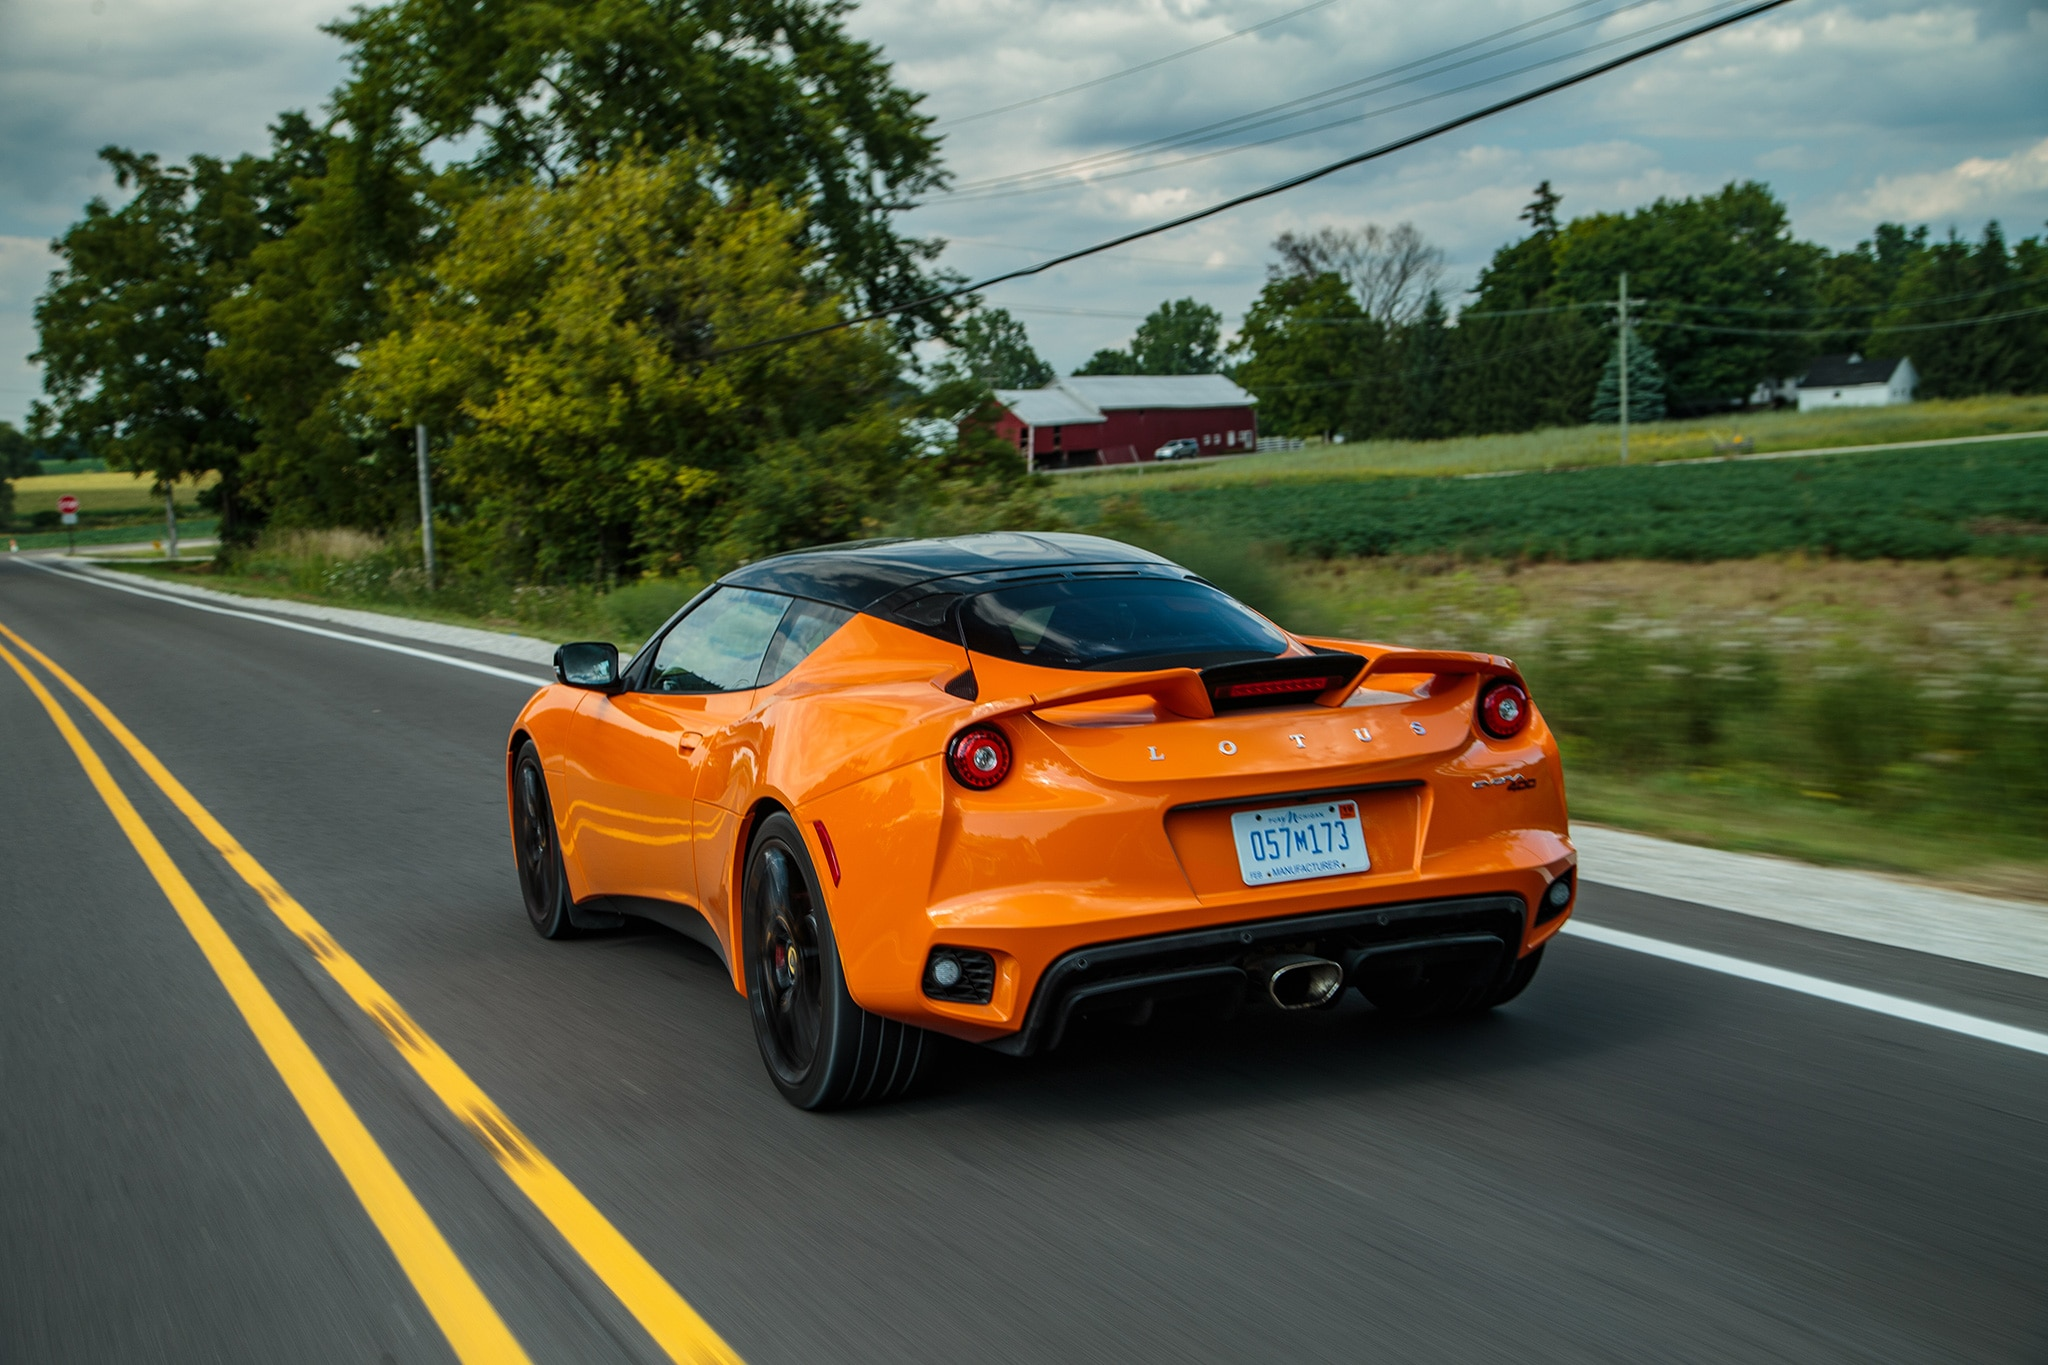 2017 Lotus Evora 400 Rear Three Quarter In Motion 03